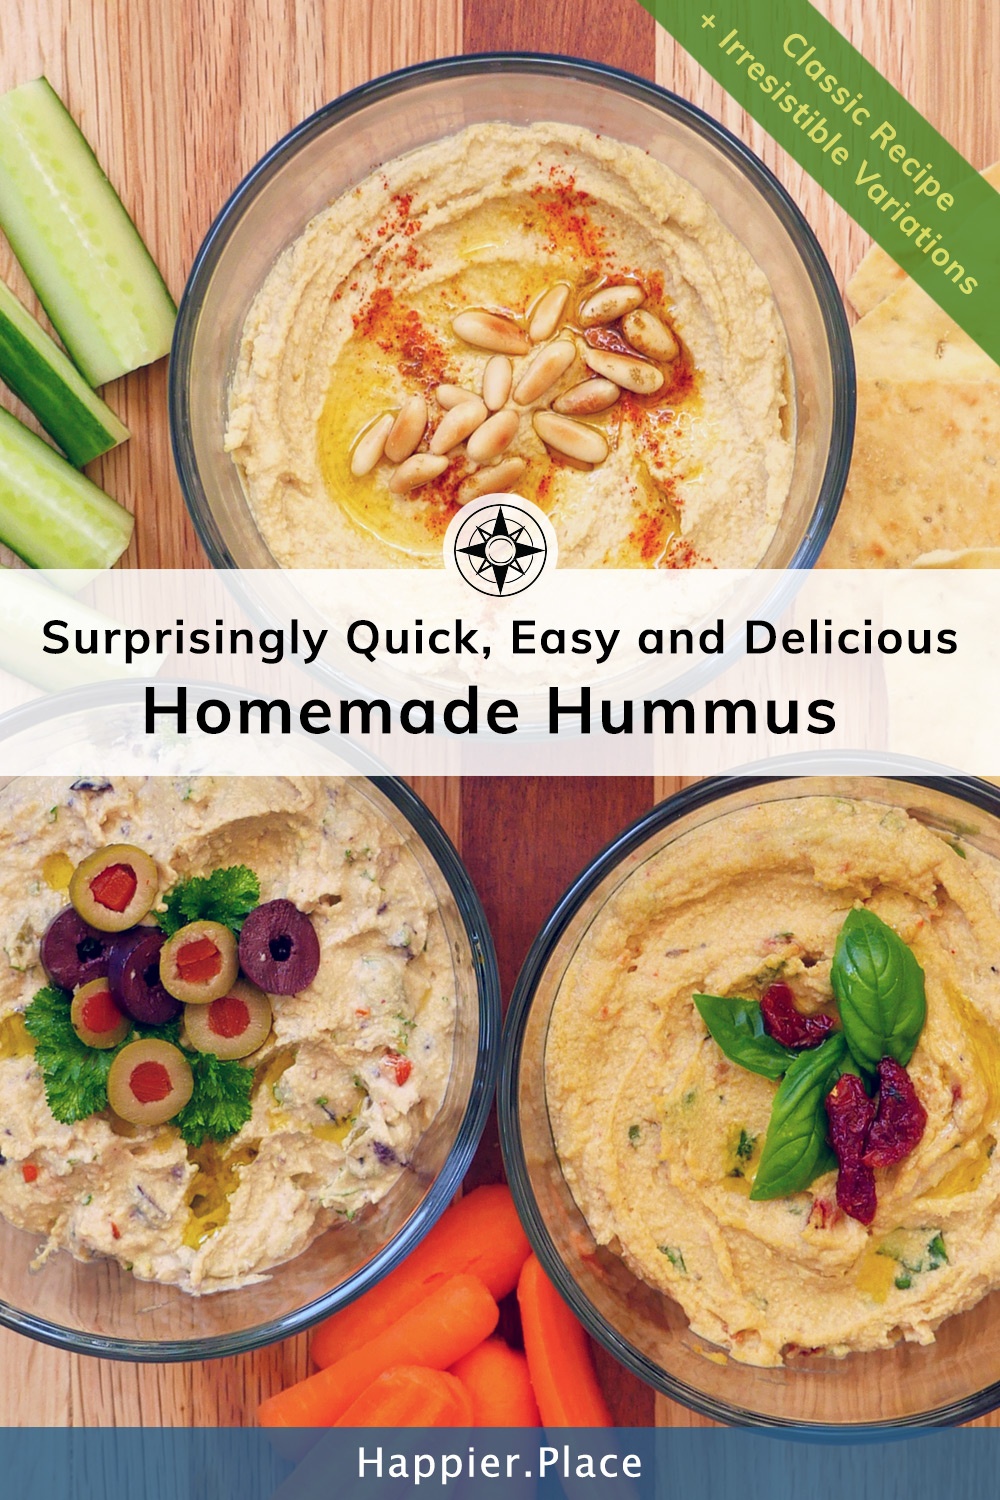 Quick easy and delicious homemade hummus recipe for classic hummus and variations.